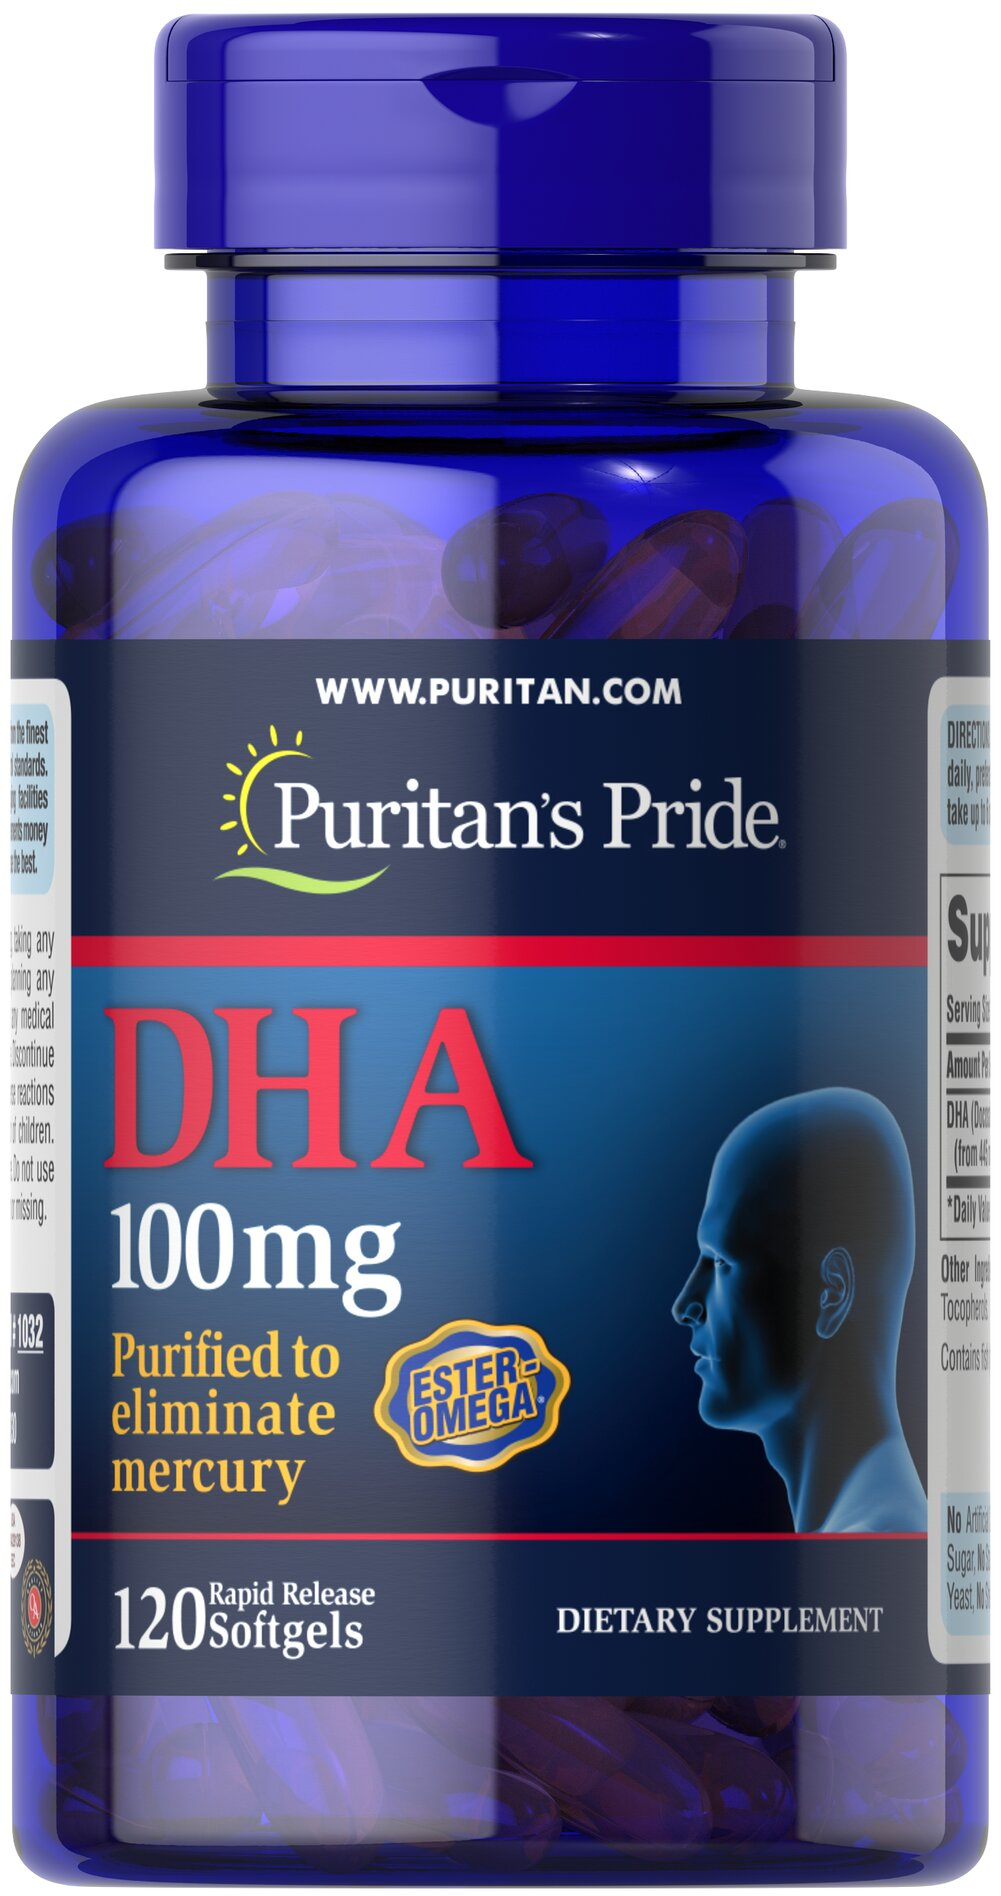 DHA 100 mg <p>DHA (Docosahexaenoic Acid) is an important Omega-3 fatty acid.</p><p>These softgels are made with Ester Omega™, a highly concentrated and purified Omega-3 fish oil selected from the finest deep sea, cold water fish. </p><p>Ester Omega™ is scientifically formulated in an antioxidant matrix to enhance potency. </p> <p>Ester Omega™ provides superior absorption of Omega-3 fatty acids – like DHA – by the body. </p><p>These rapid rele